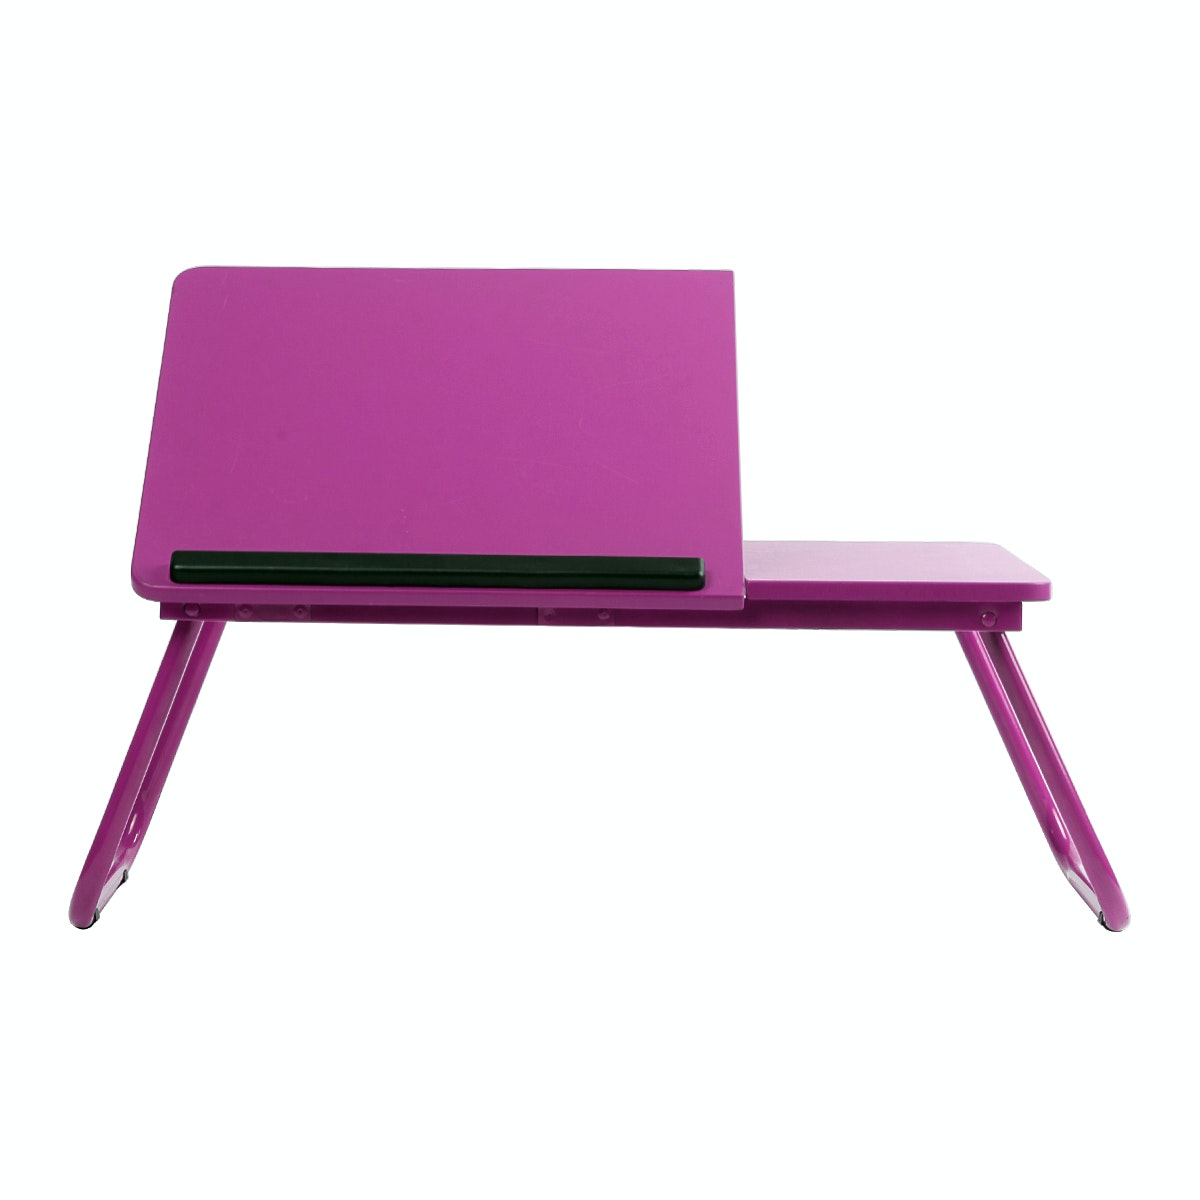 Informa Folding Table Oxy Merah muda